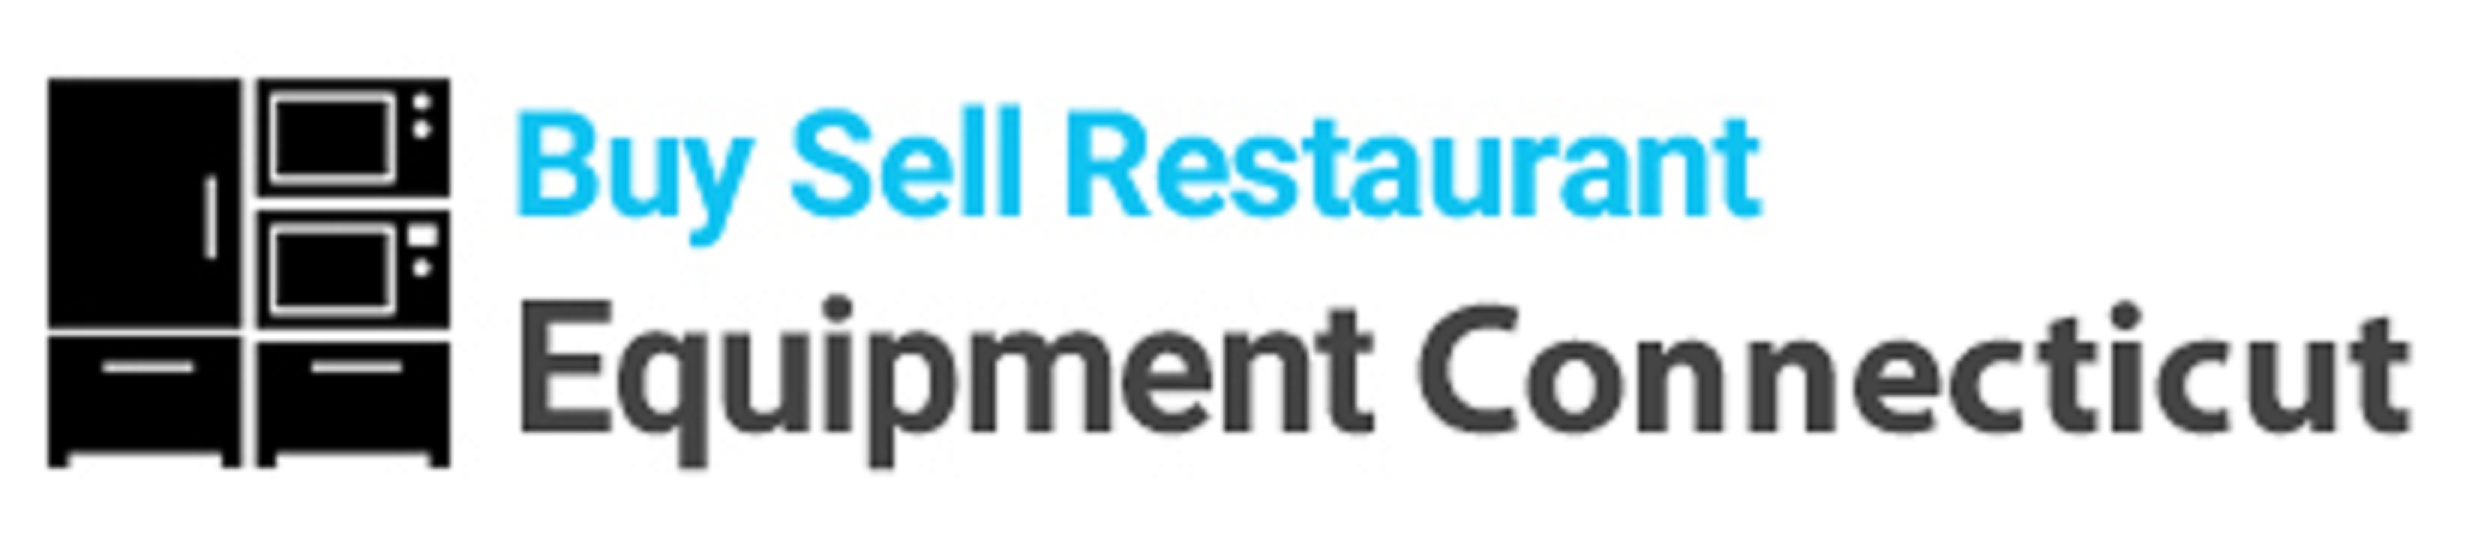 Buy & Sell Restaurant Equipment CT